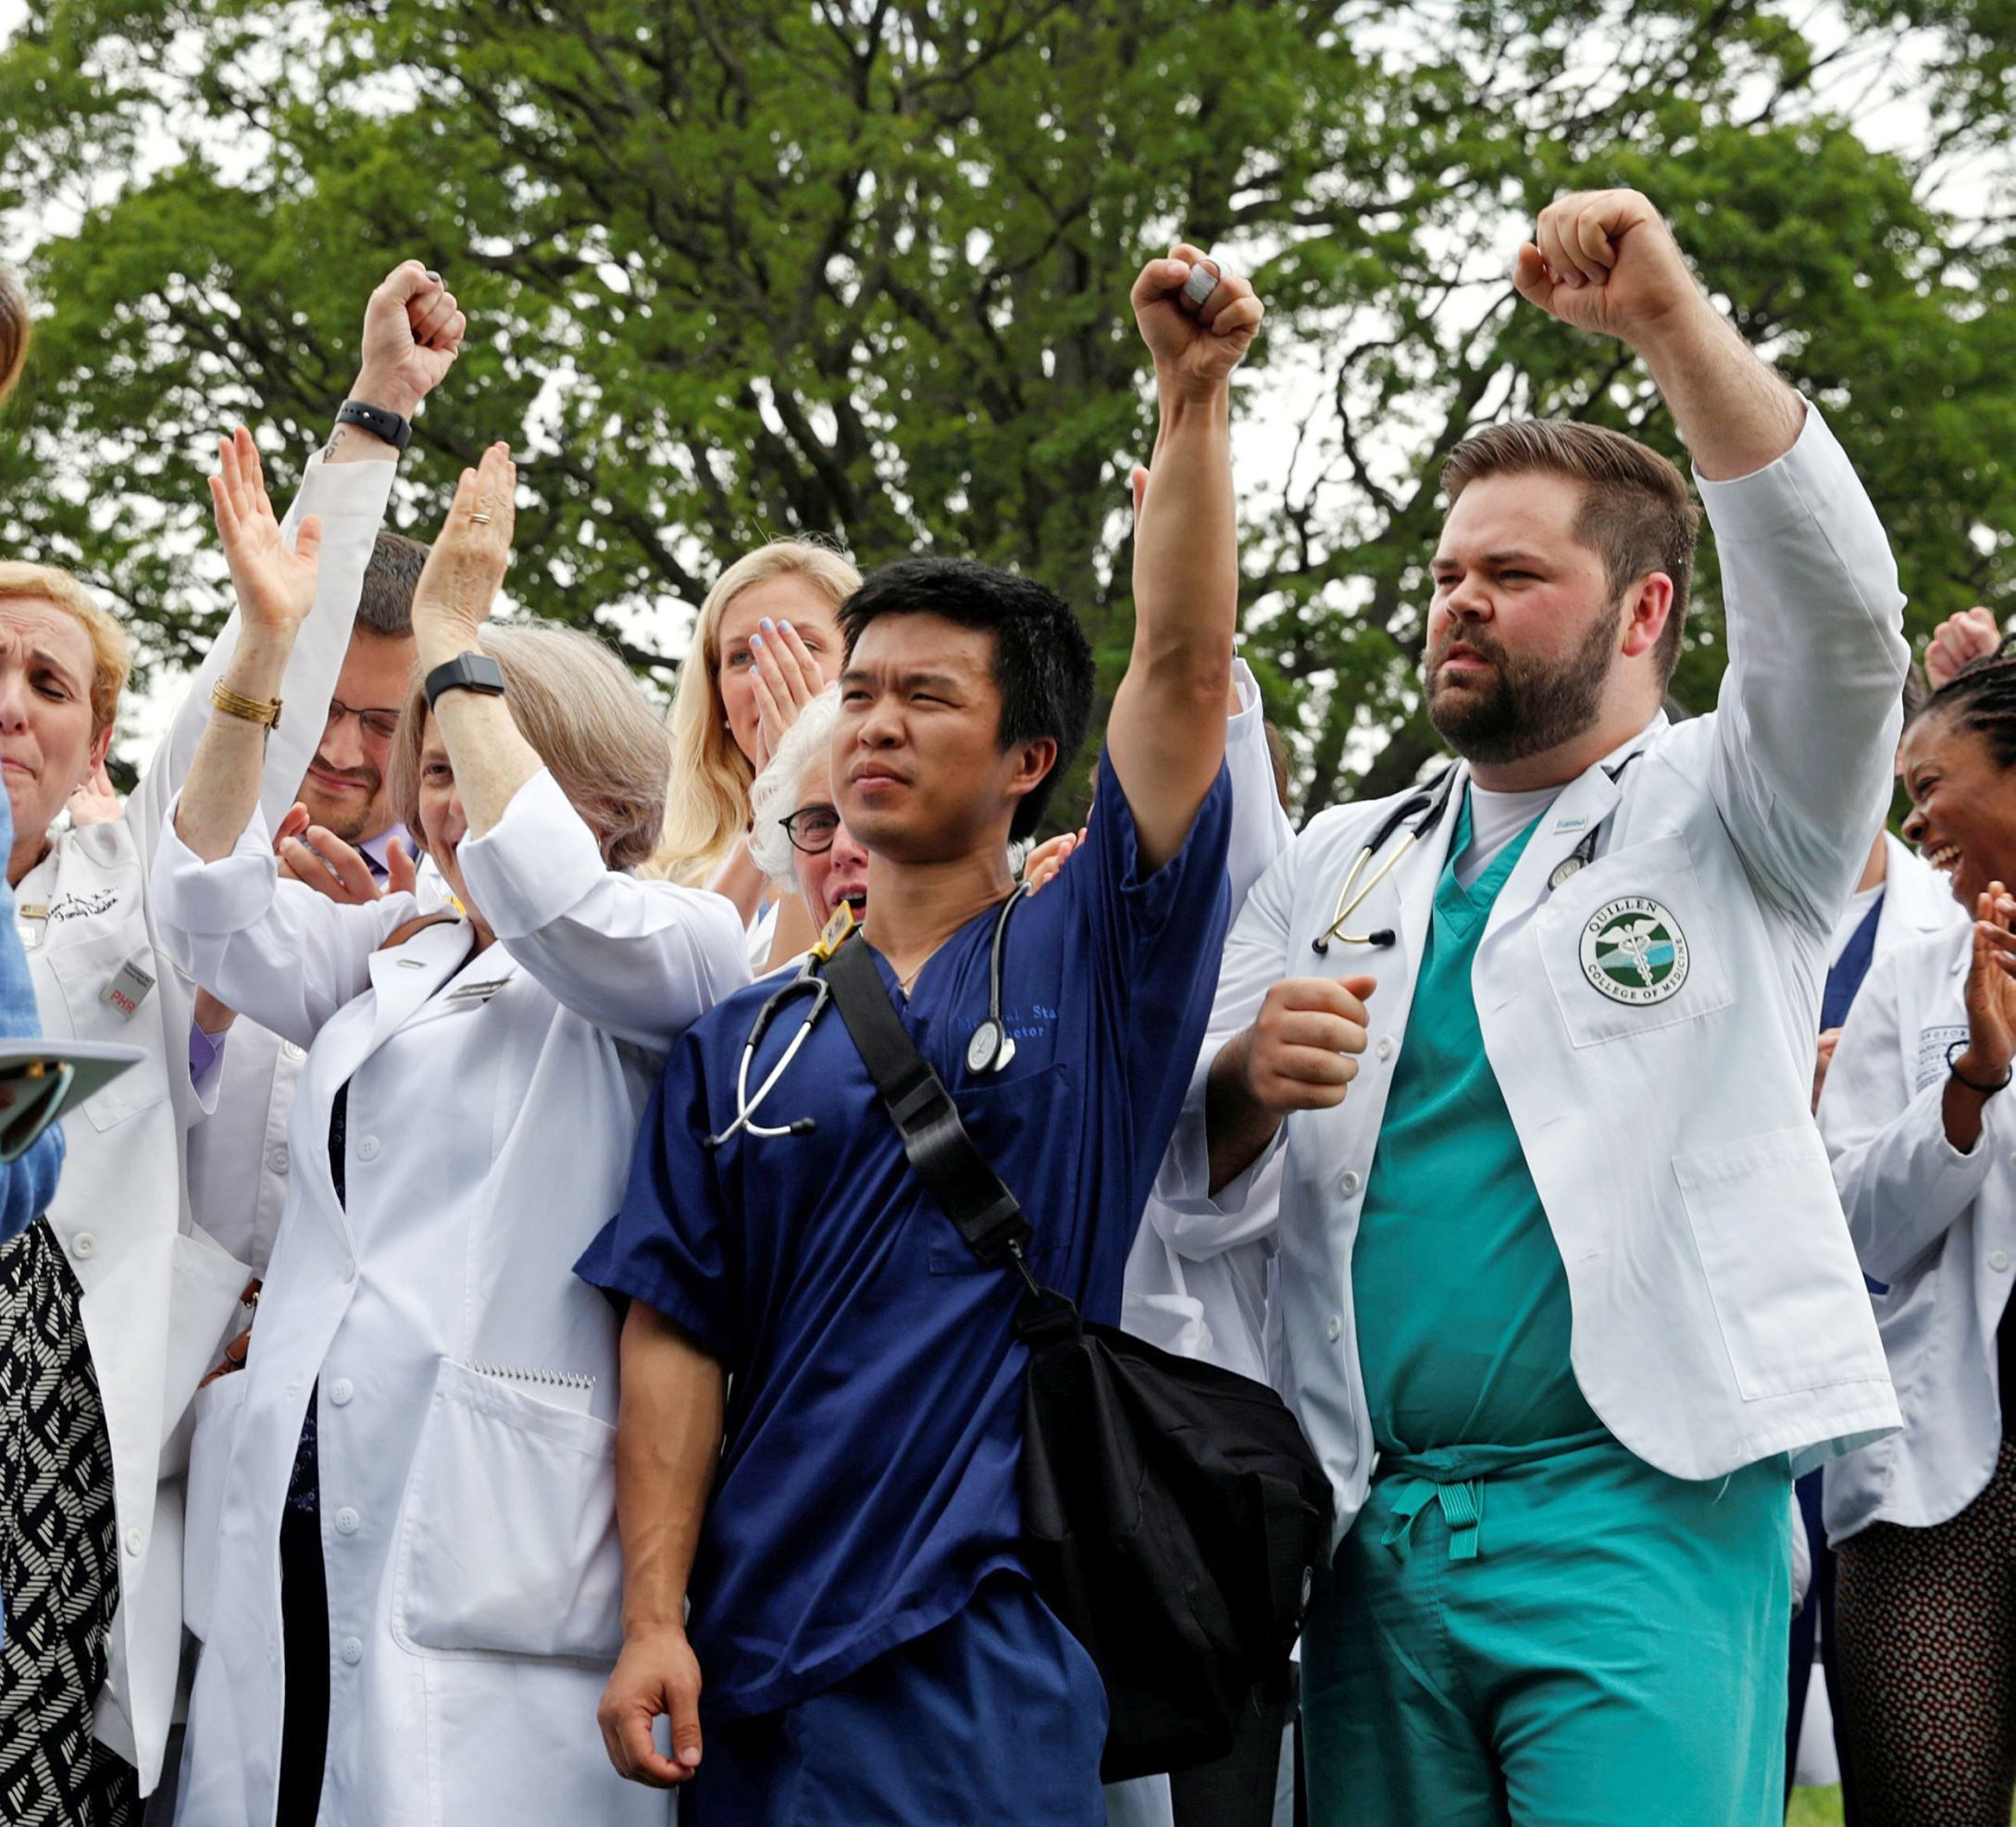 Mainstream medical groups, from oncologists to